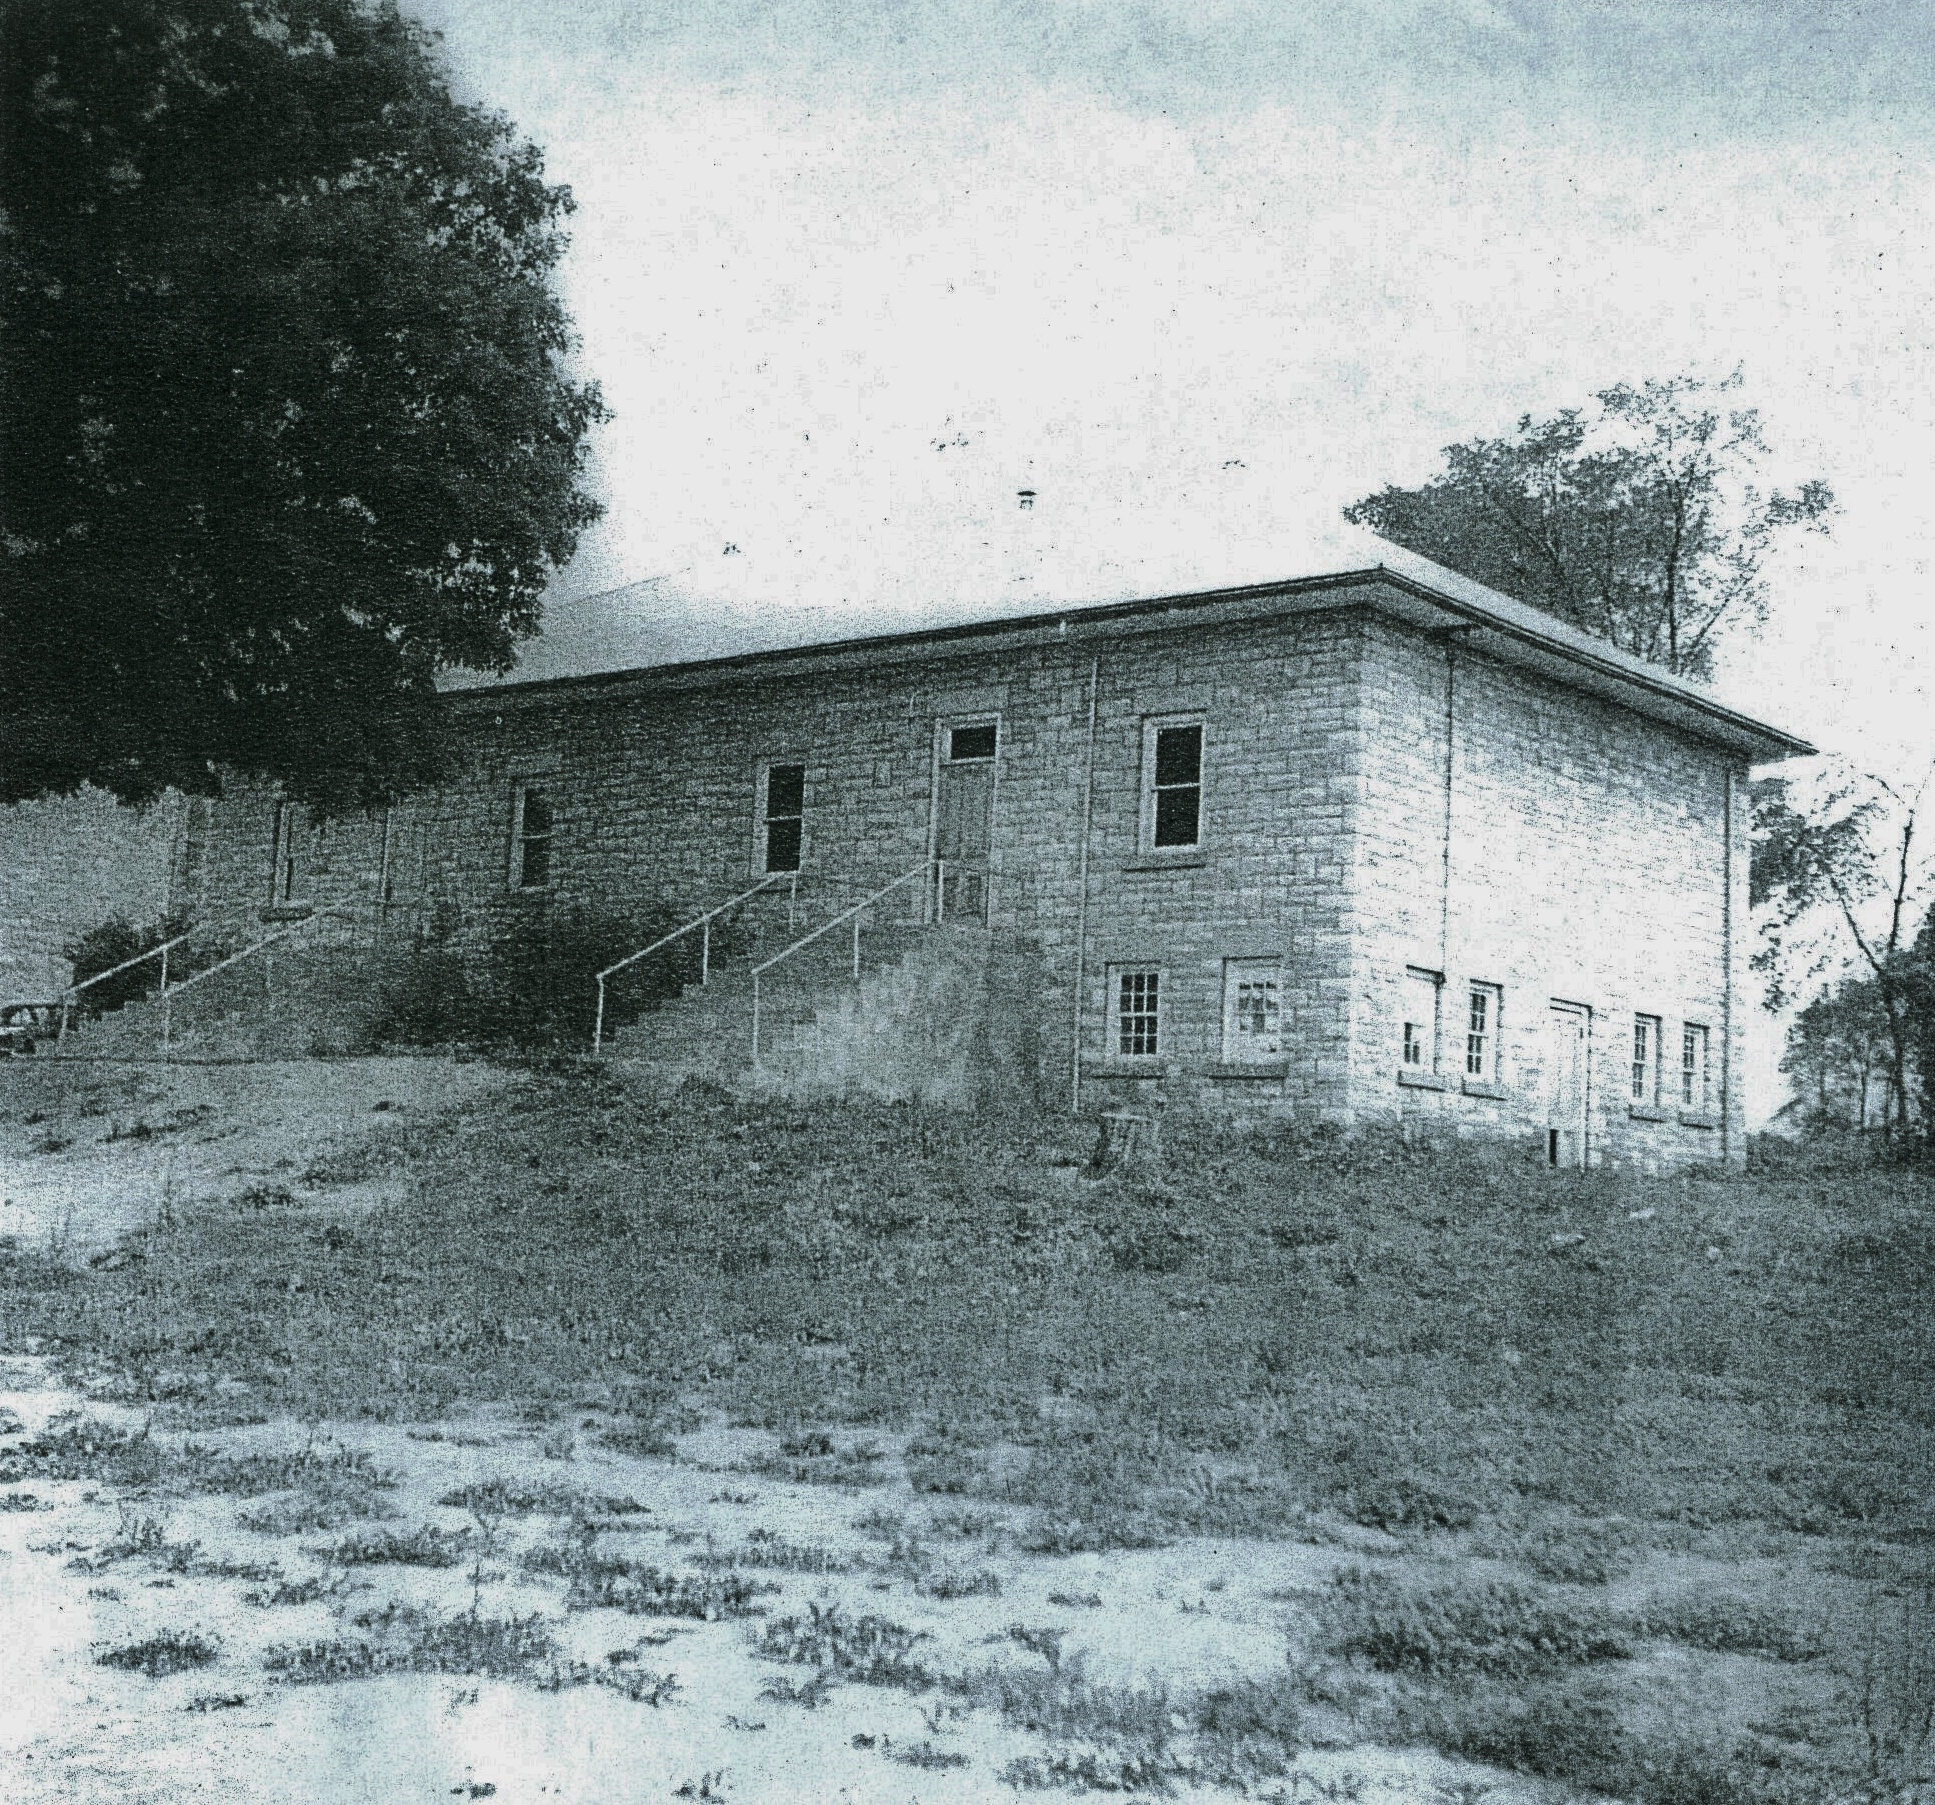 Two Room school house with basement for storage and old two seater toilets, built in 1922